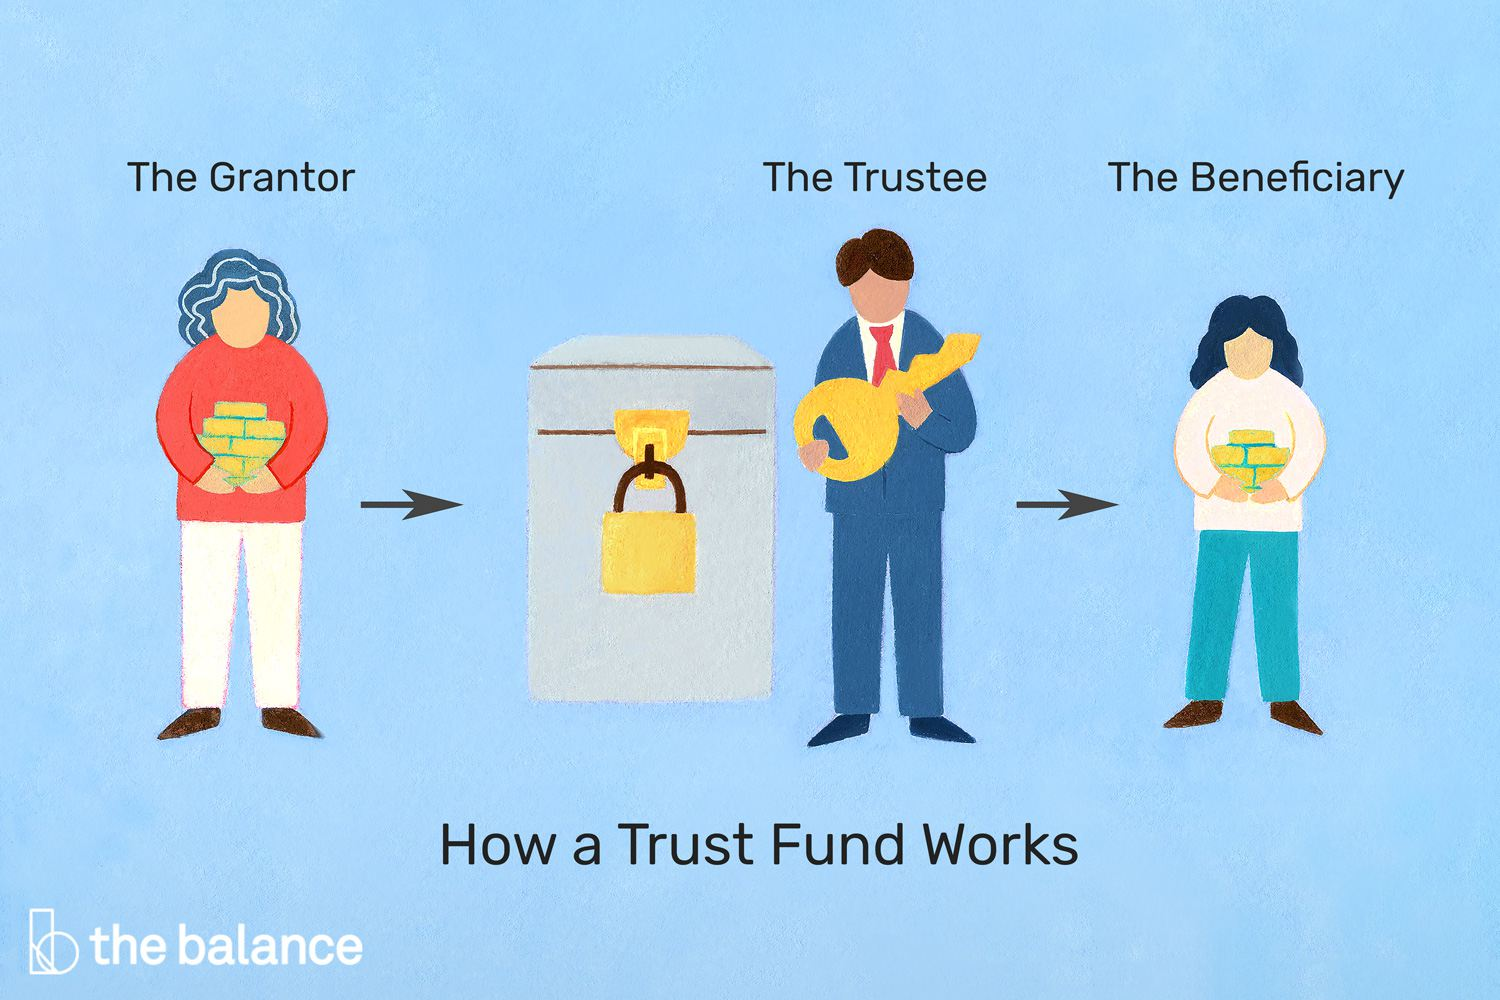 what is a trust fund and what are the benefits of one?